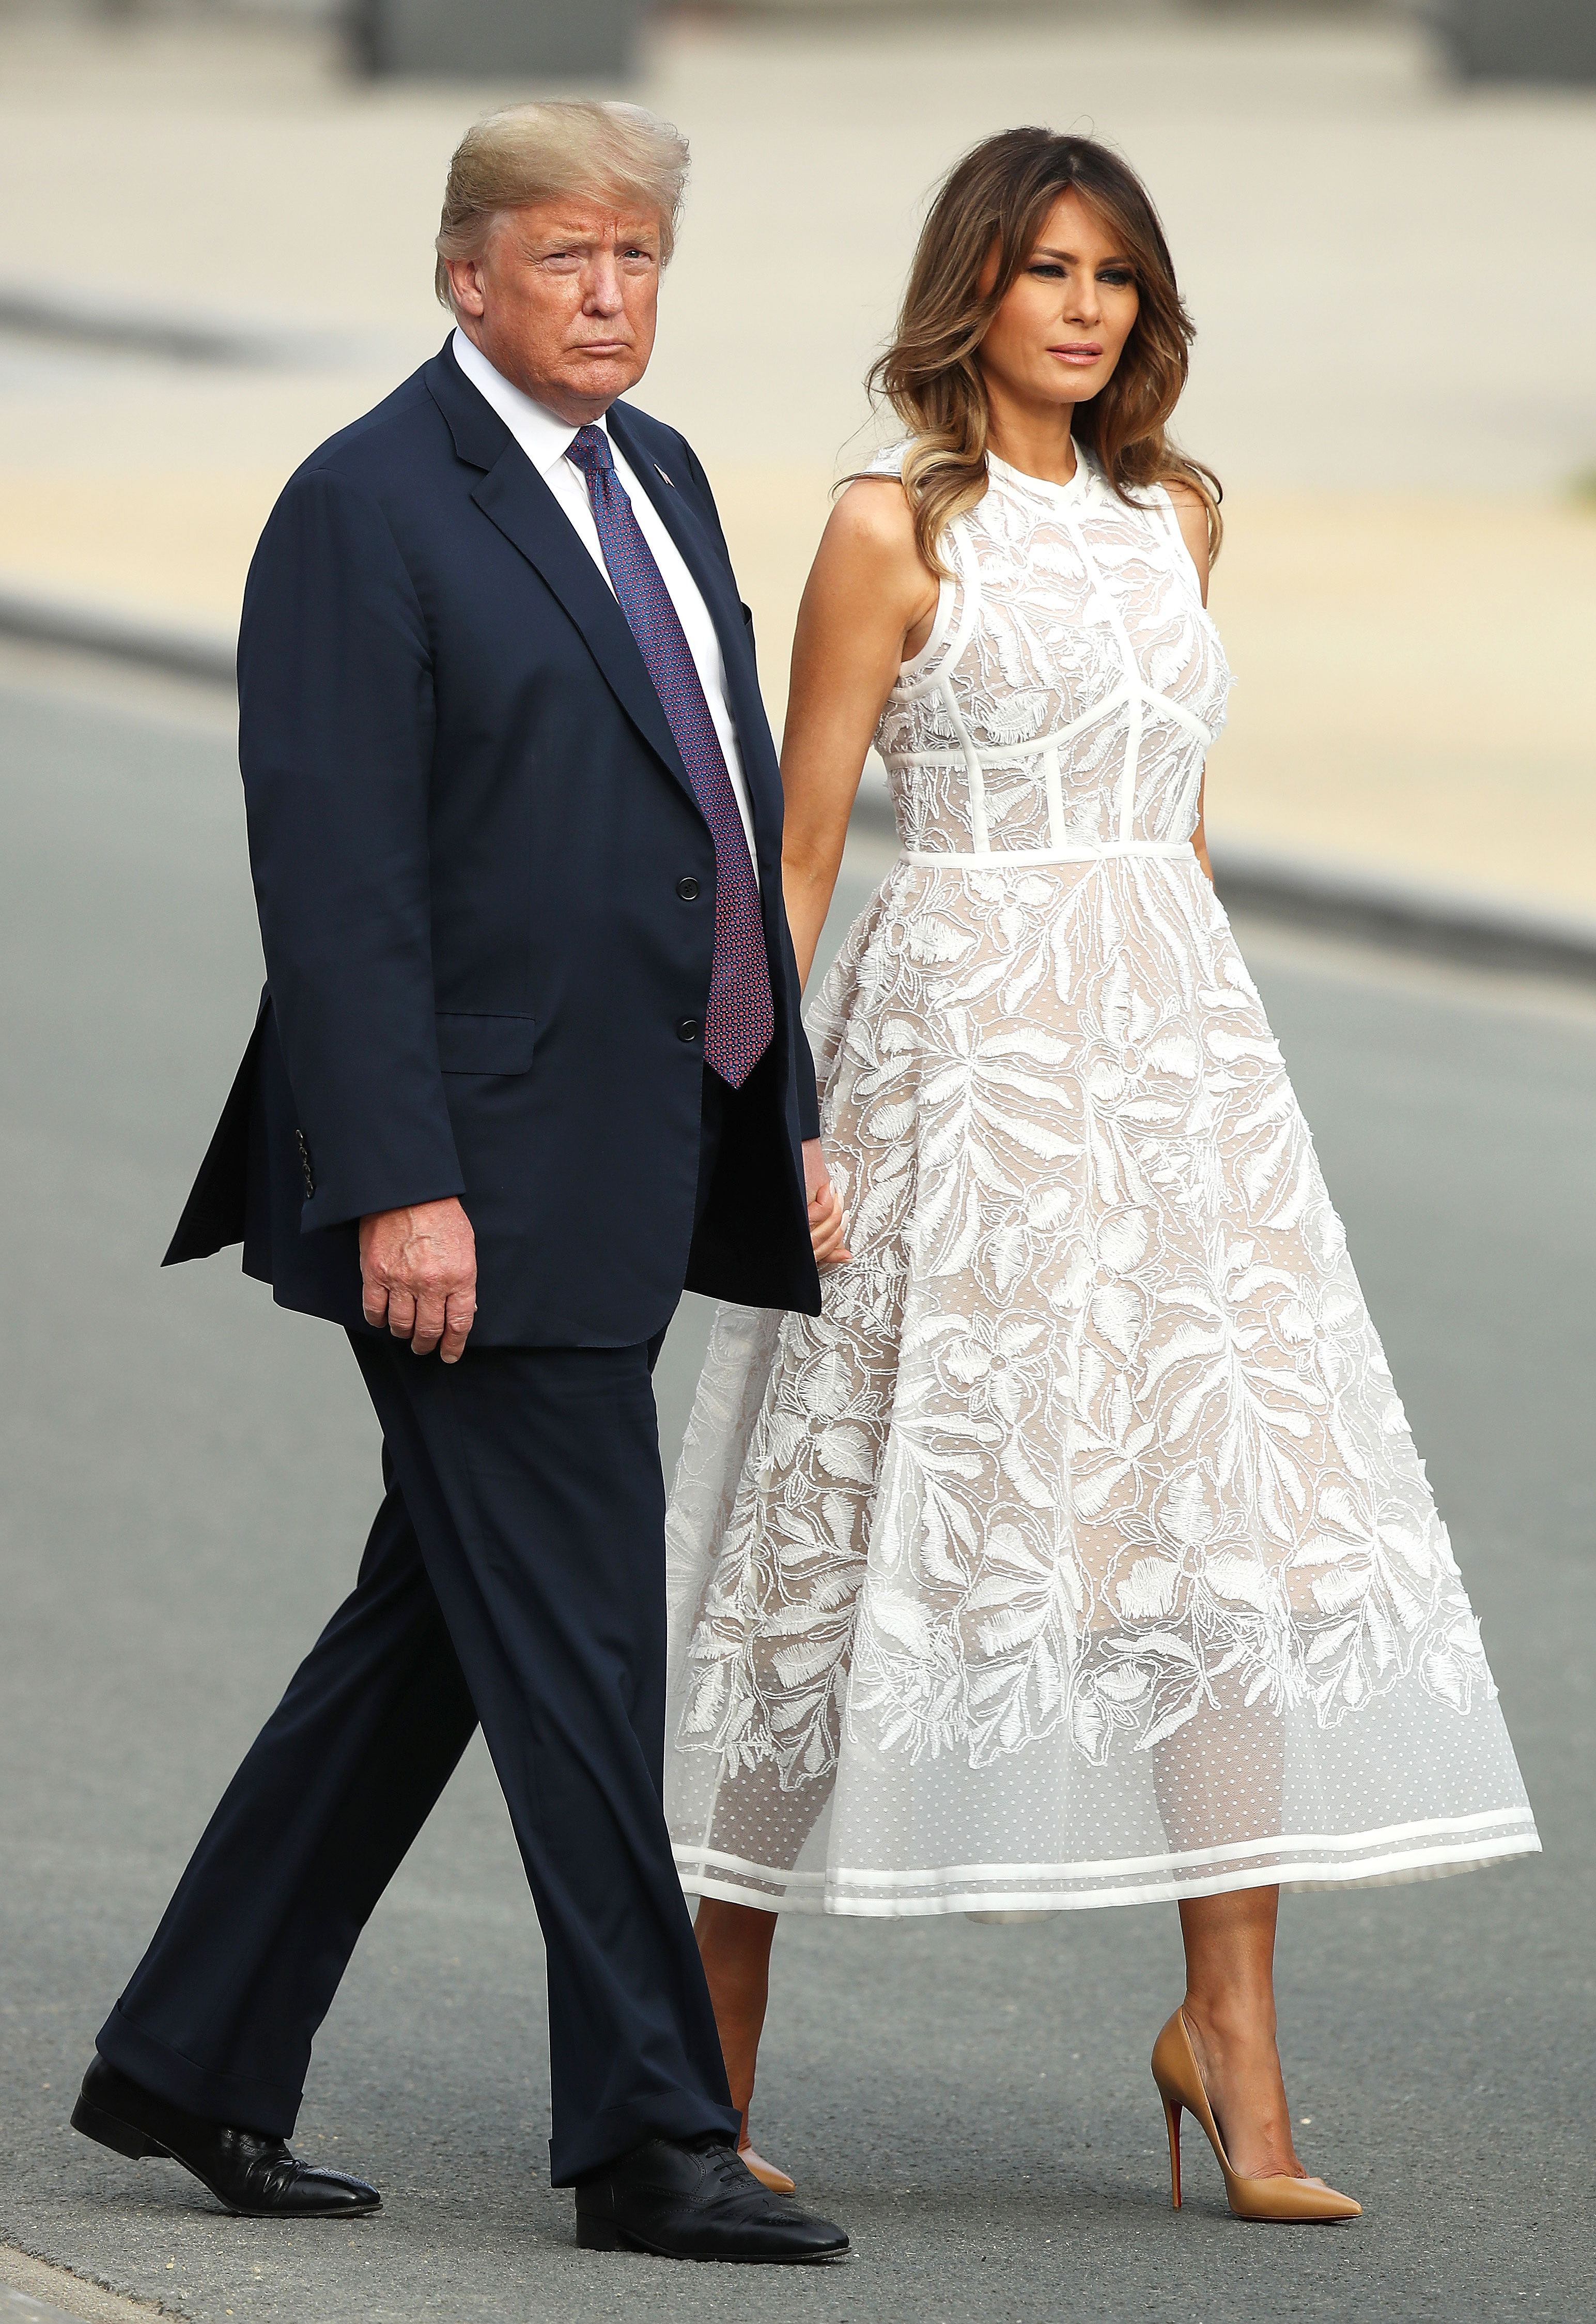 Melania Trump - BRUSSELS, BELGIUM – JULY 11: U.S. President Donald Trump and U.S. First Lady Melania Trump attend the evening reception and dinner at the 2018 NATO Summit on July 11, 2018 in Brussels, Belgium. Leaders from NATO member and partner states are meeting for a two-day summit, which is being overshadowed by strong demands by U.S. […]